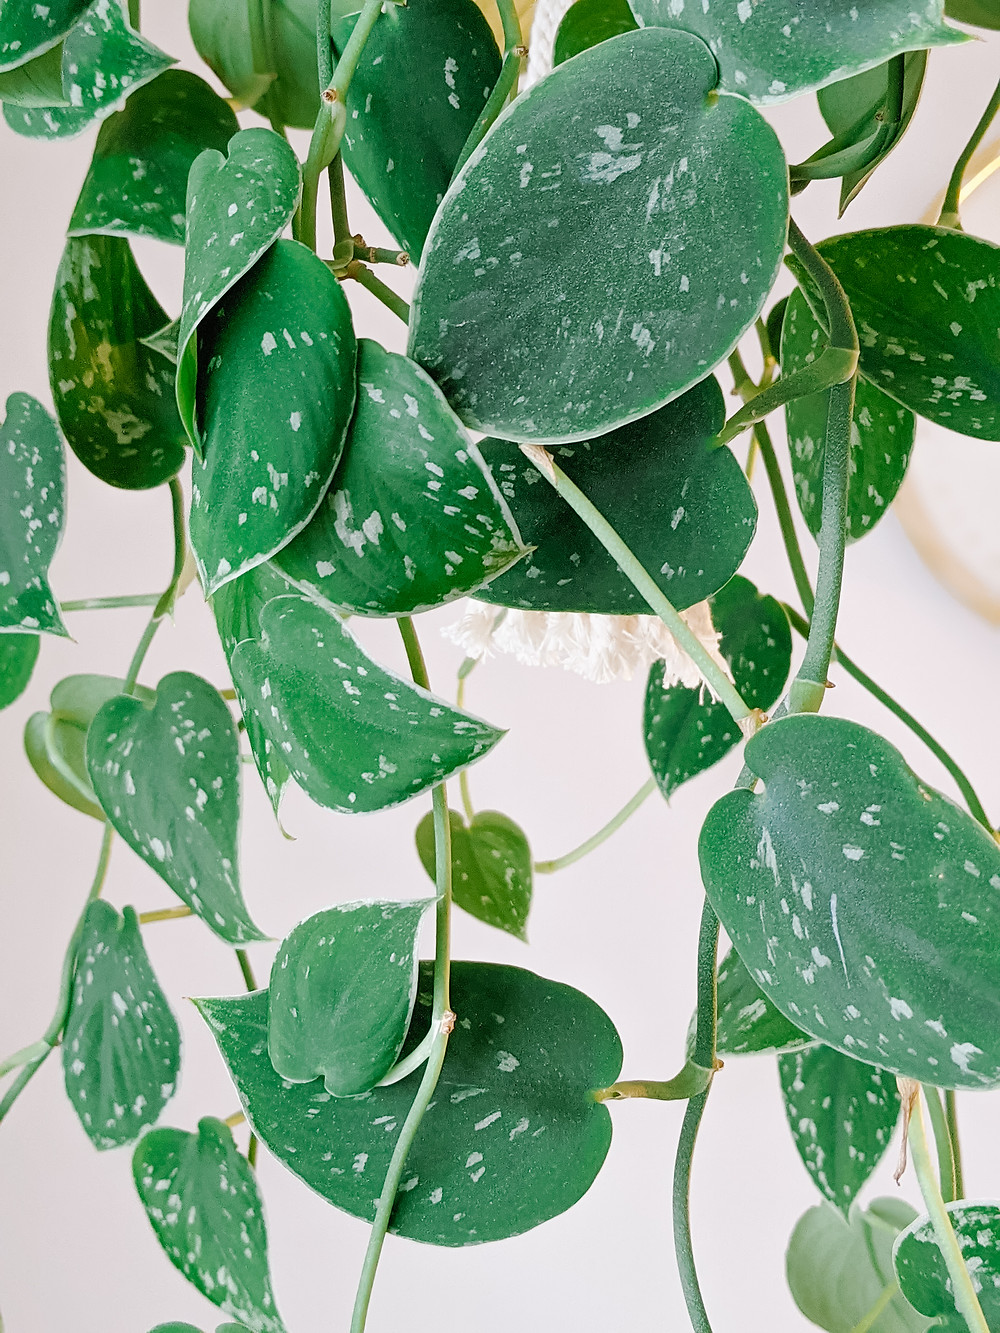 Satin Pothos with green leaves and silvery speckles